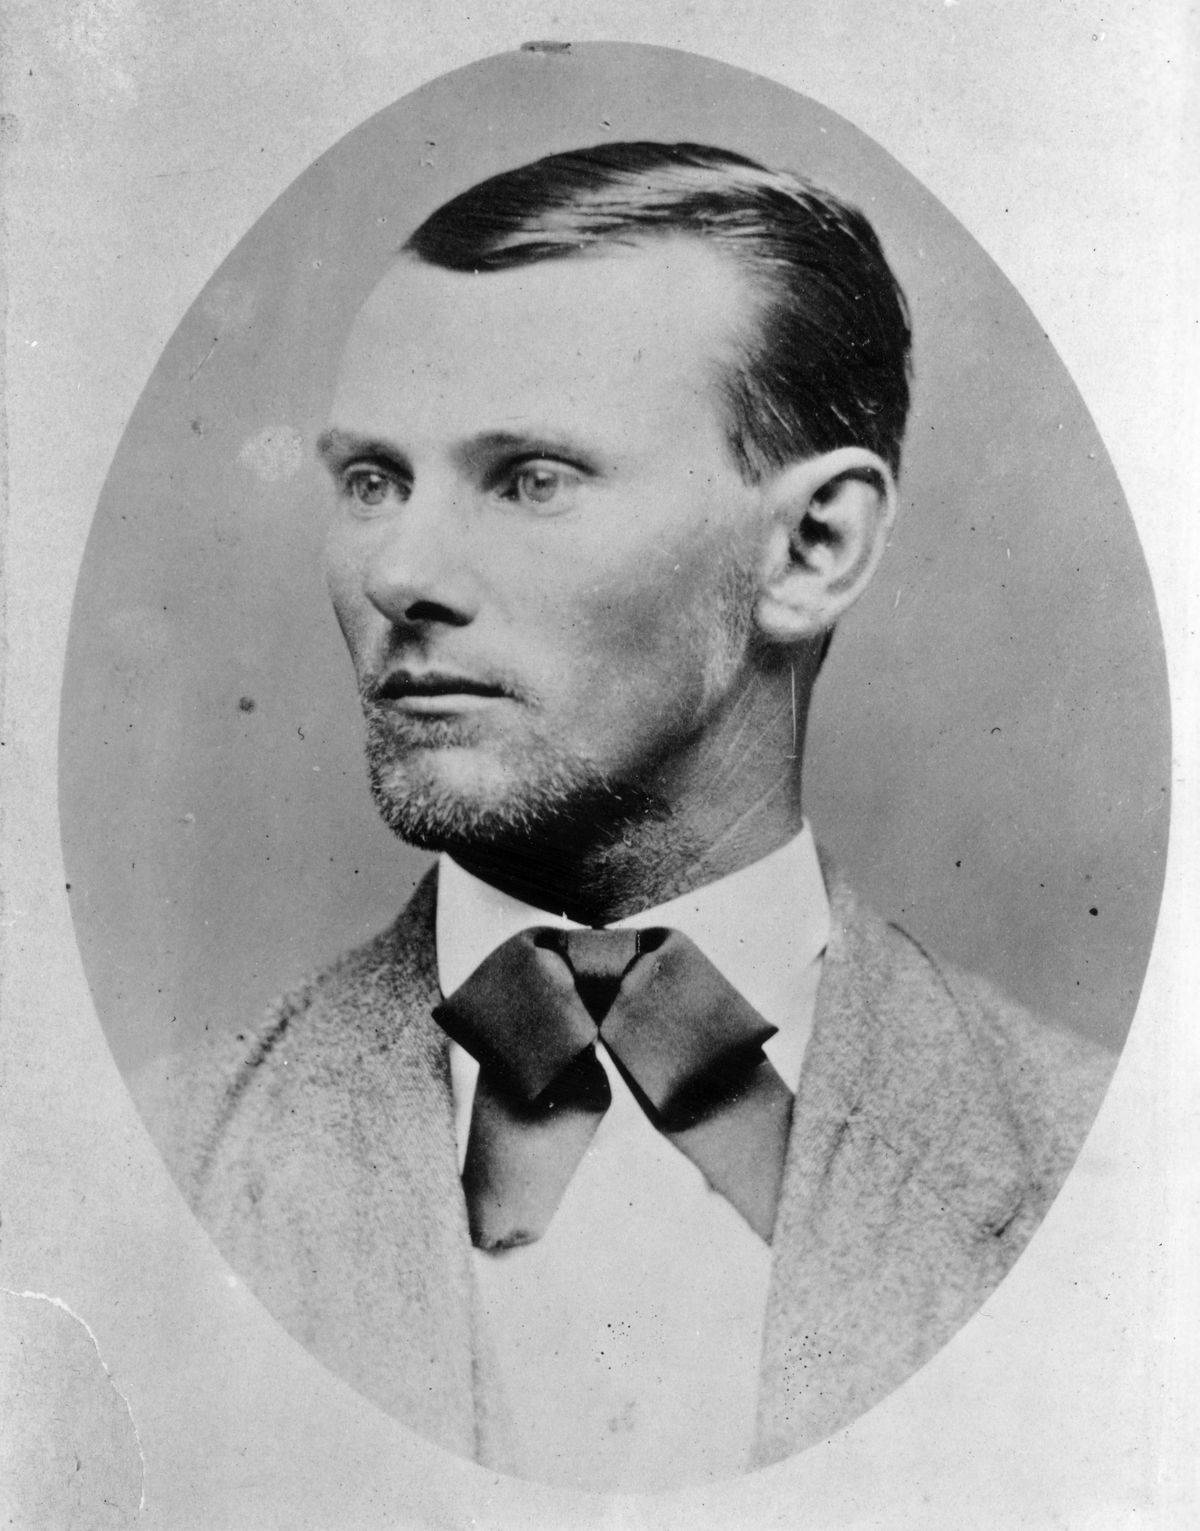 American outlaw Jesse James